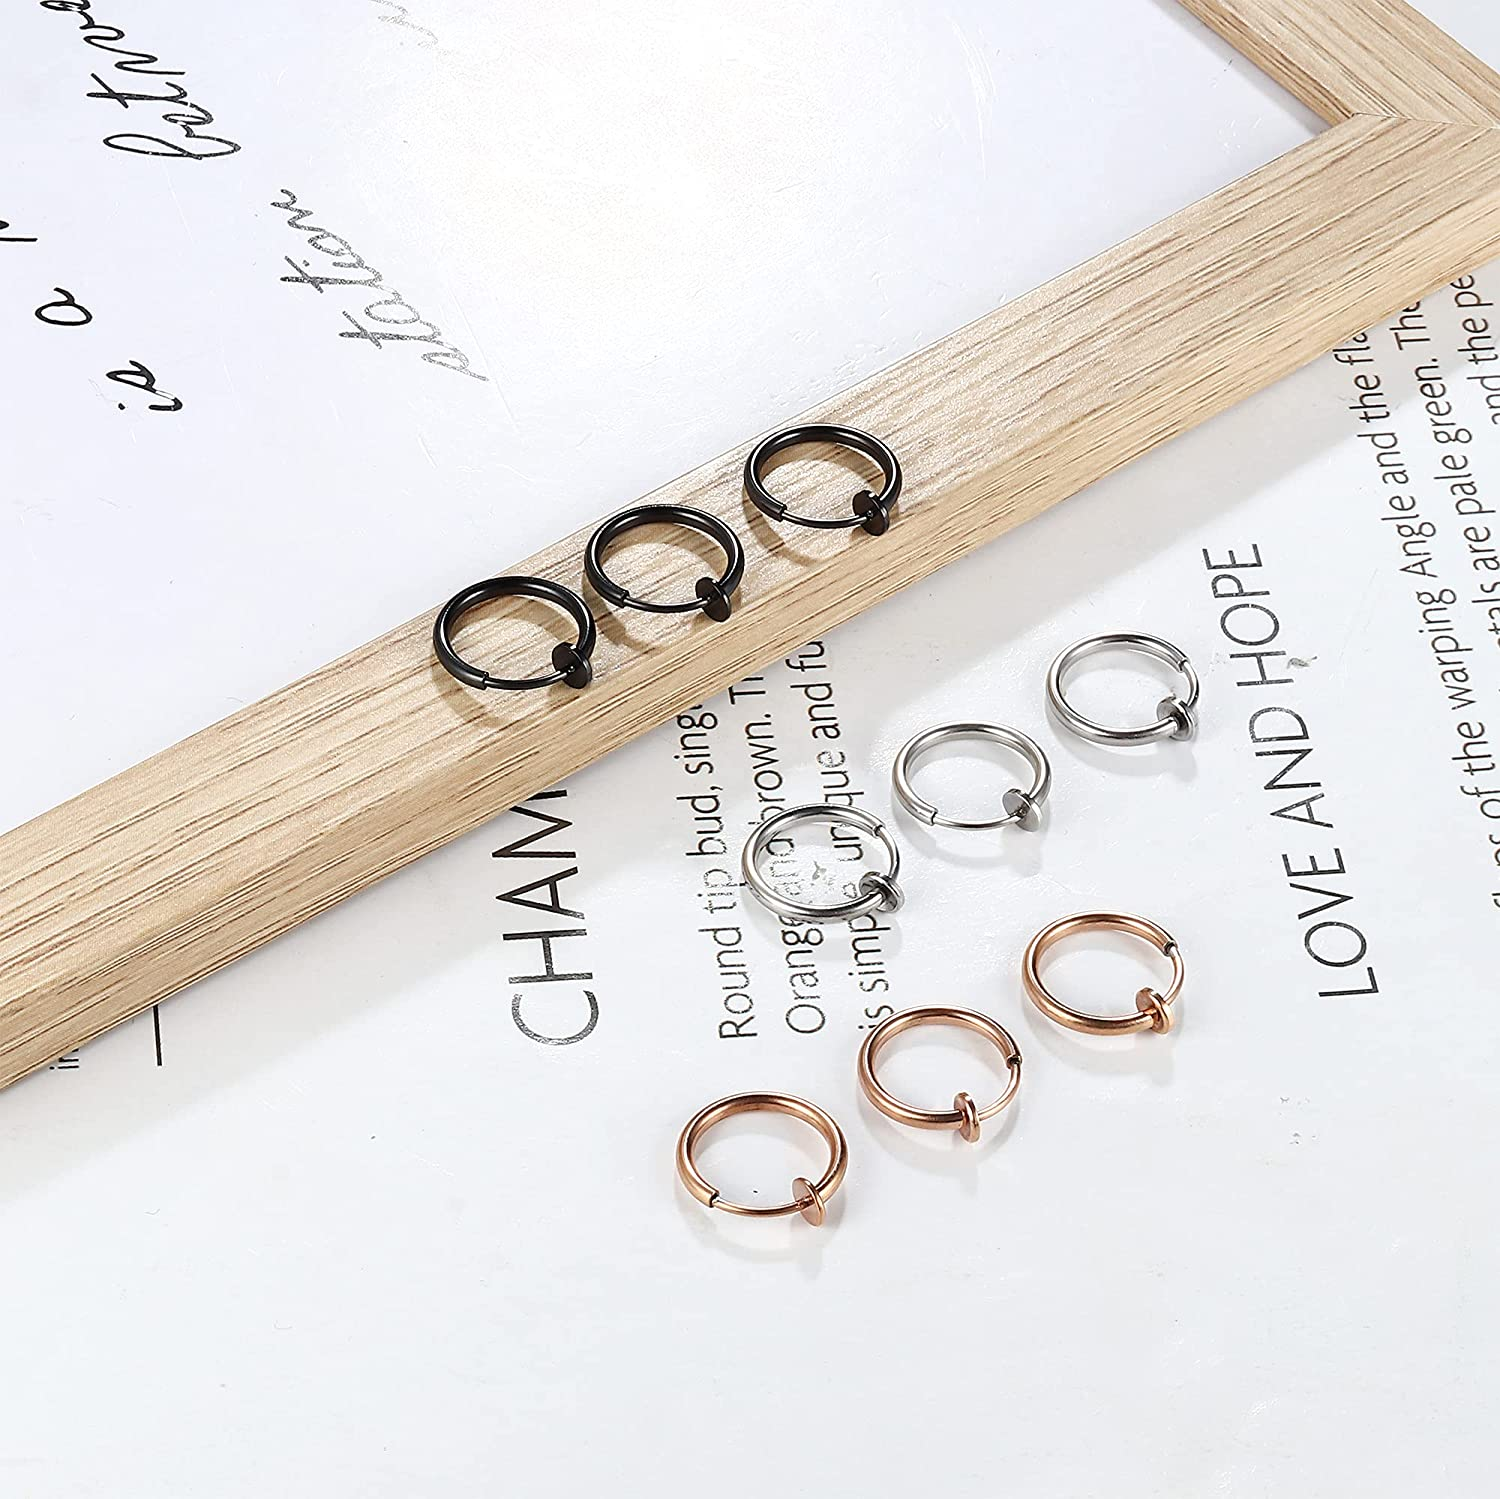 IRONBOX 9Pcs Fake Nose Rings Hoop Stainless Steel Retractable Nose Ring Clip On Spring Faux Lip Ring Faux Helix Cartilage Earrings Non Piercing Jewelry for Women Men